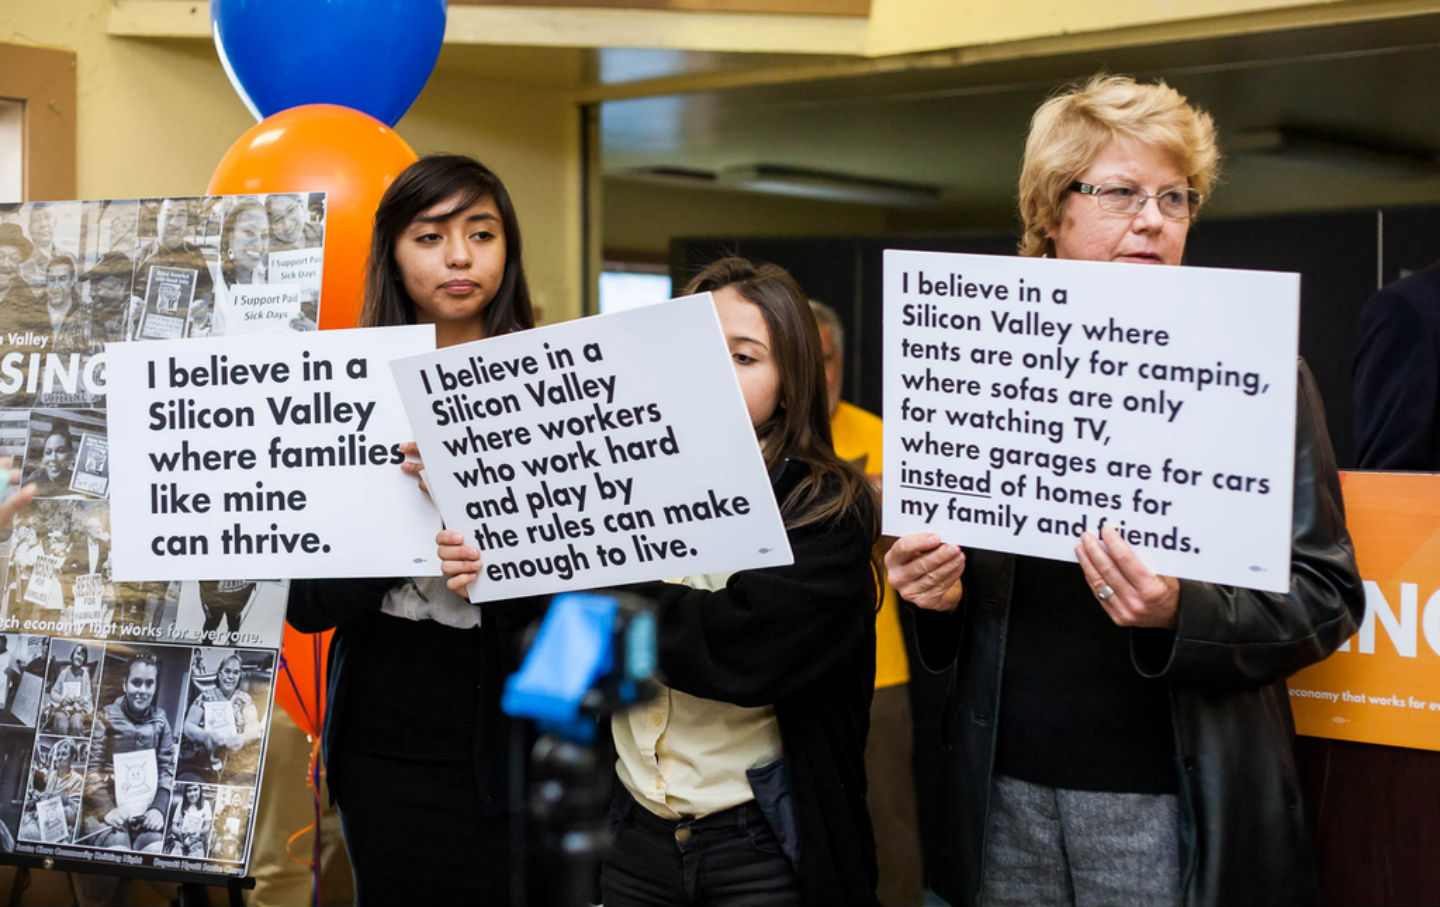 silicon valley s wealth gap the nation supporters of silicon valley rising hold signs at the coalition s launch in 2015 photo by tri nguyen